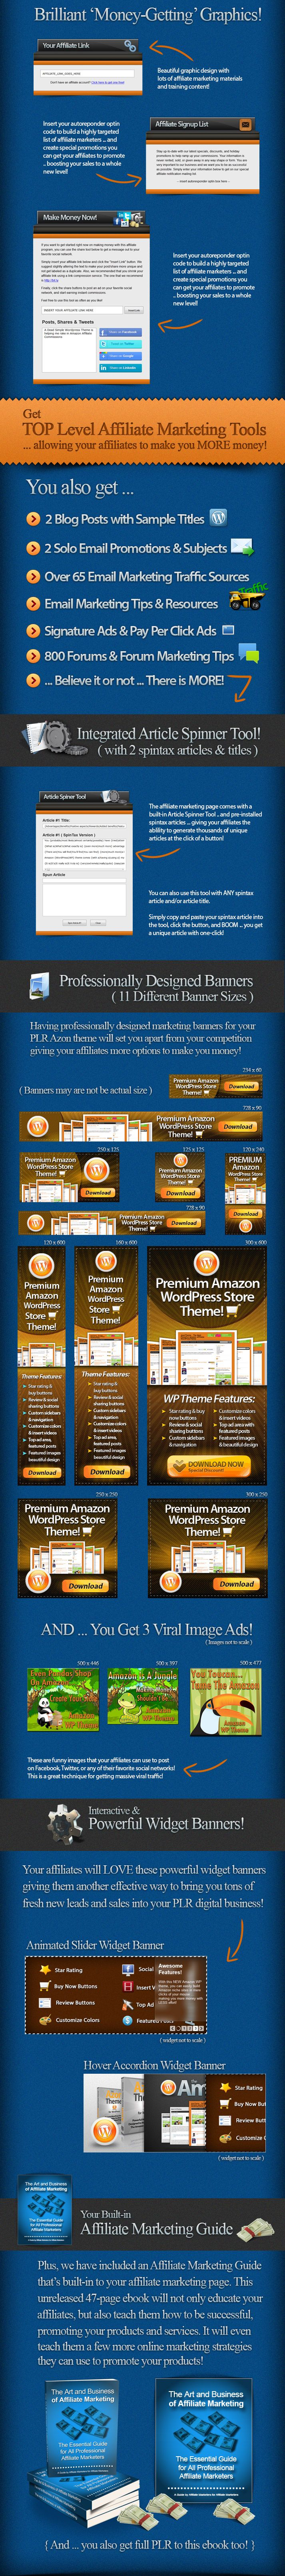 Amazing Selling Machine Review: it's a new internet marketing training program created by Jason Katzenback and Matt Clark that aims at teaching business owners how to profit from Amazon